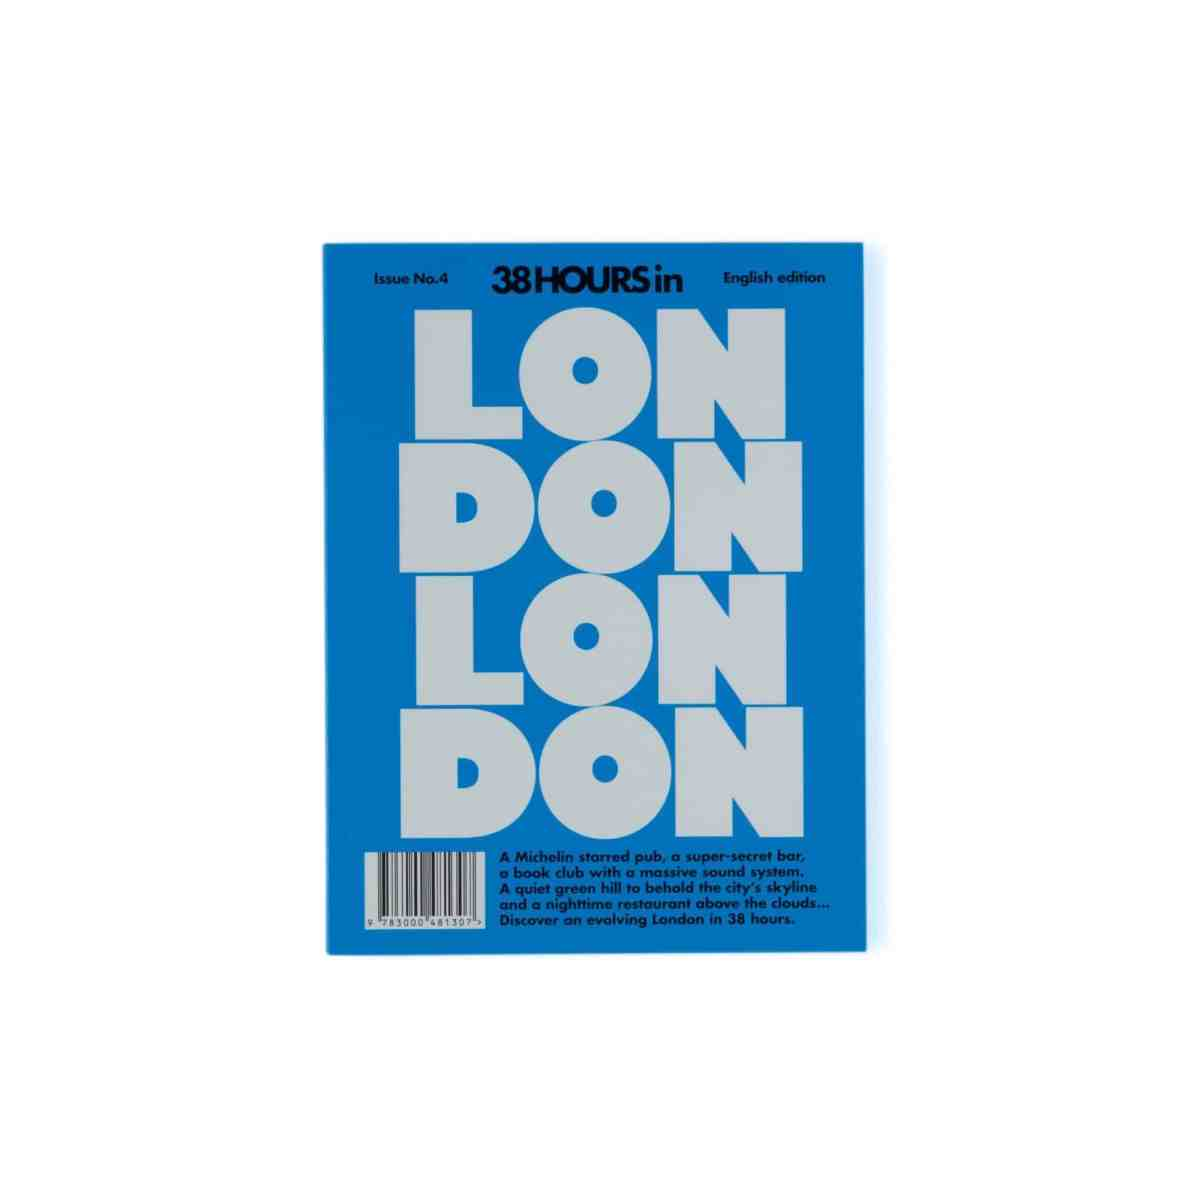 38-hour-travel-guide-issue-4-london-001